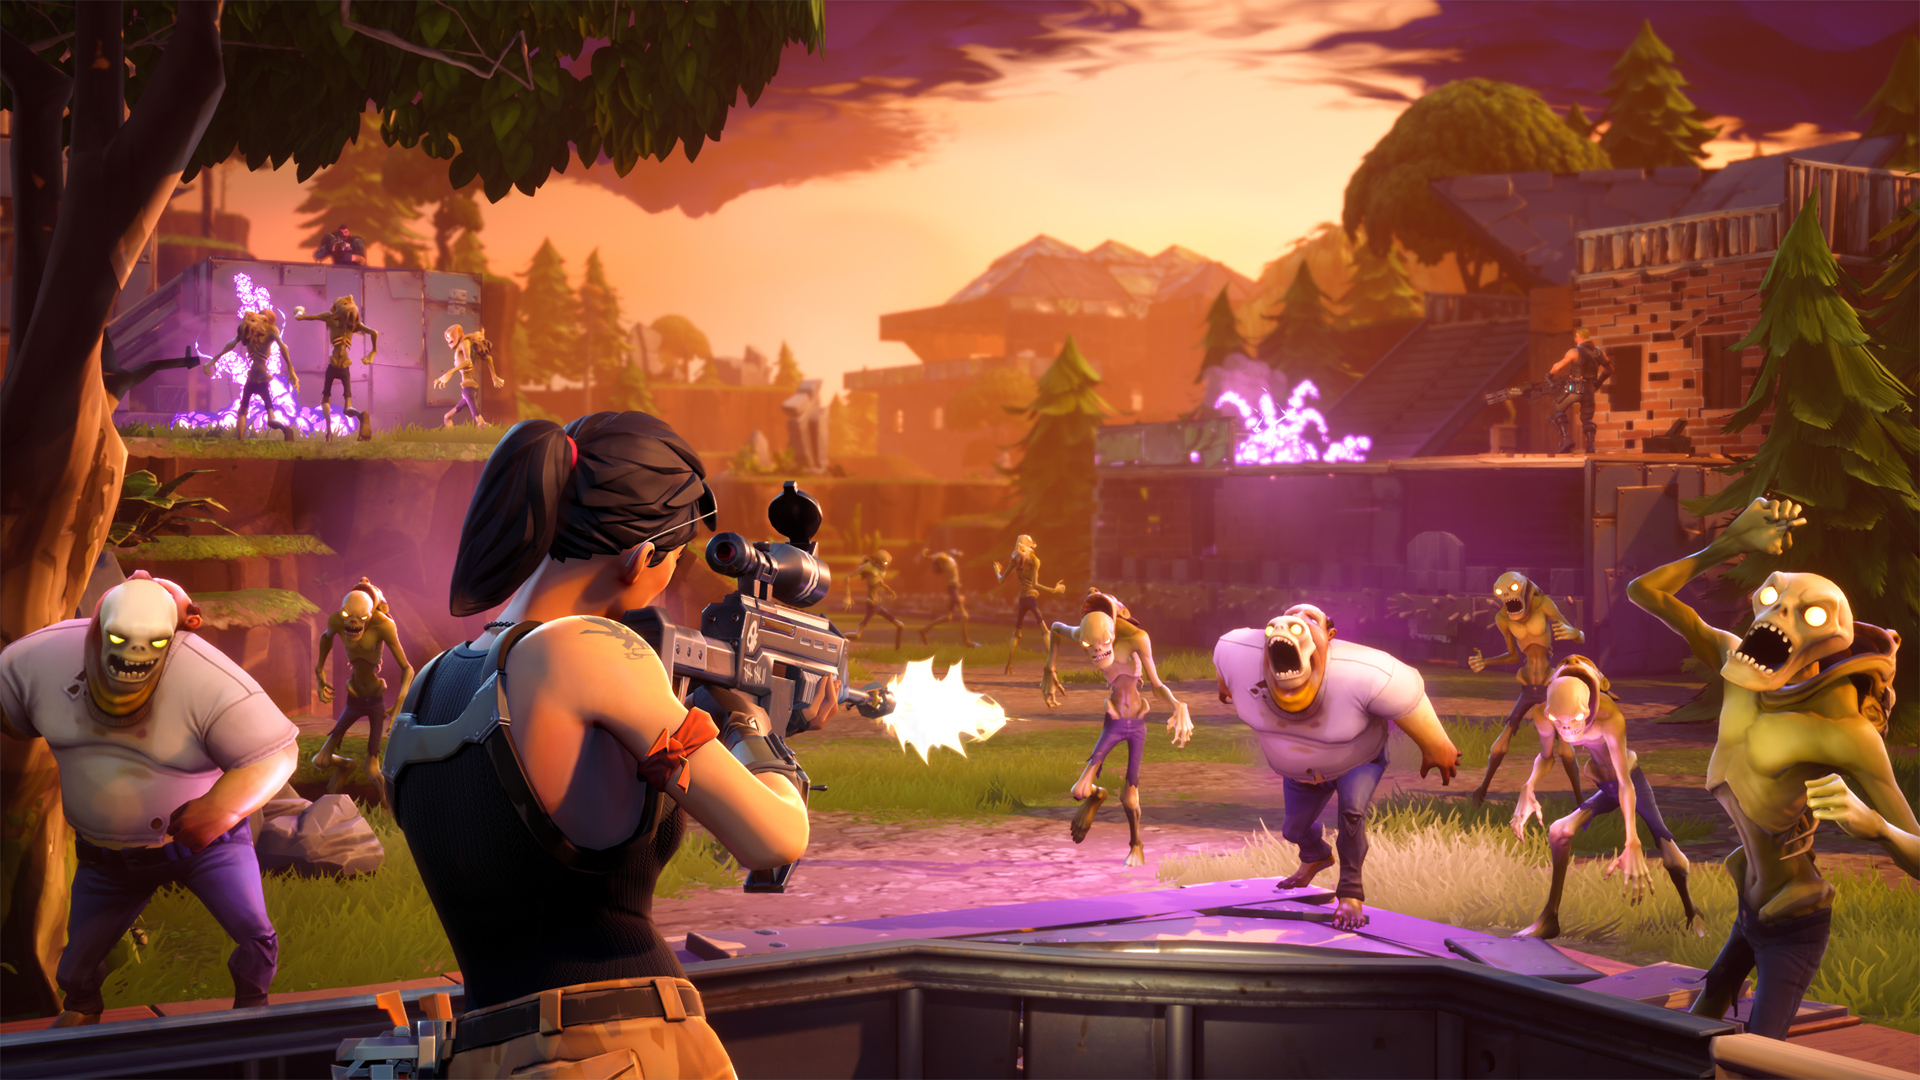 For Better Or Worse Fortnite Seems Like A Real Time Sink